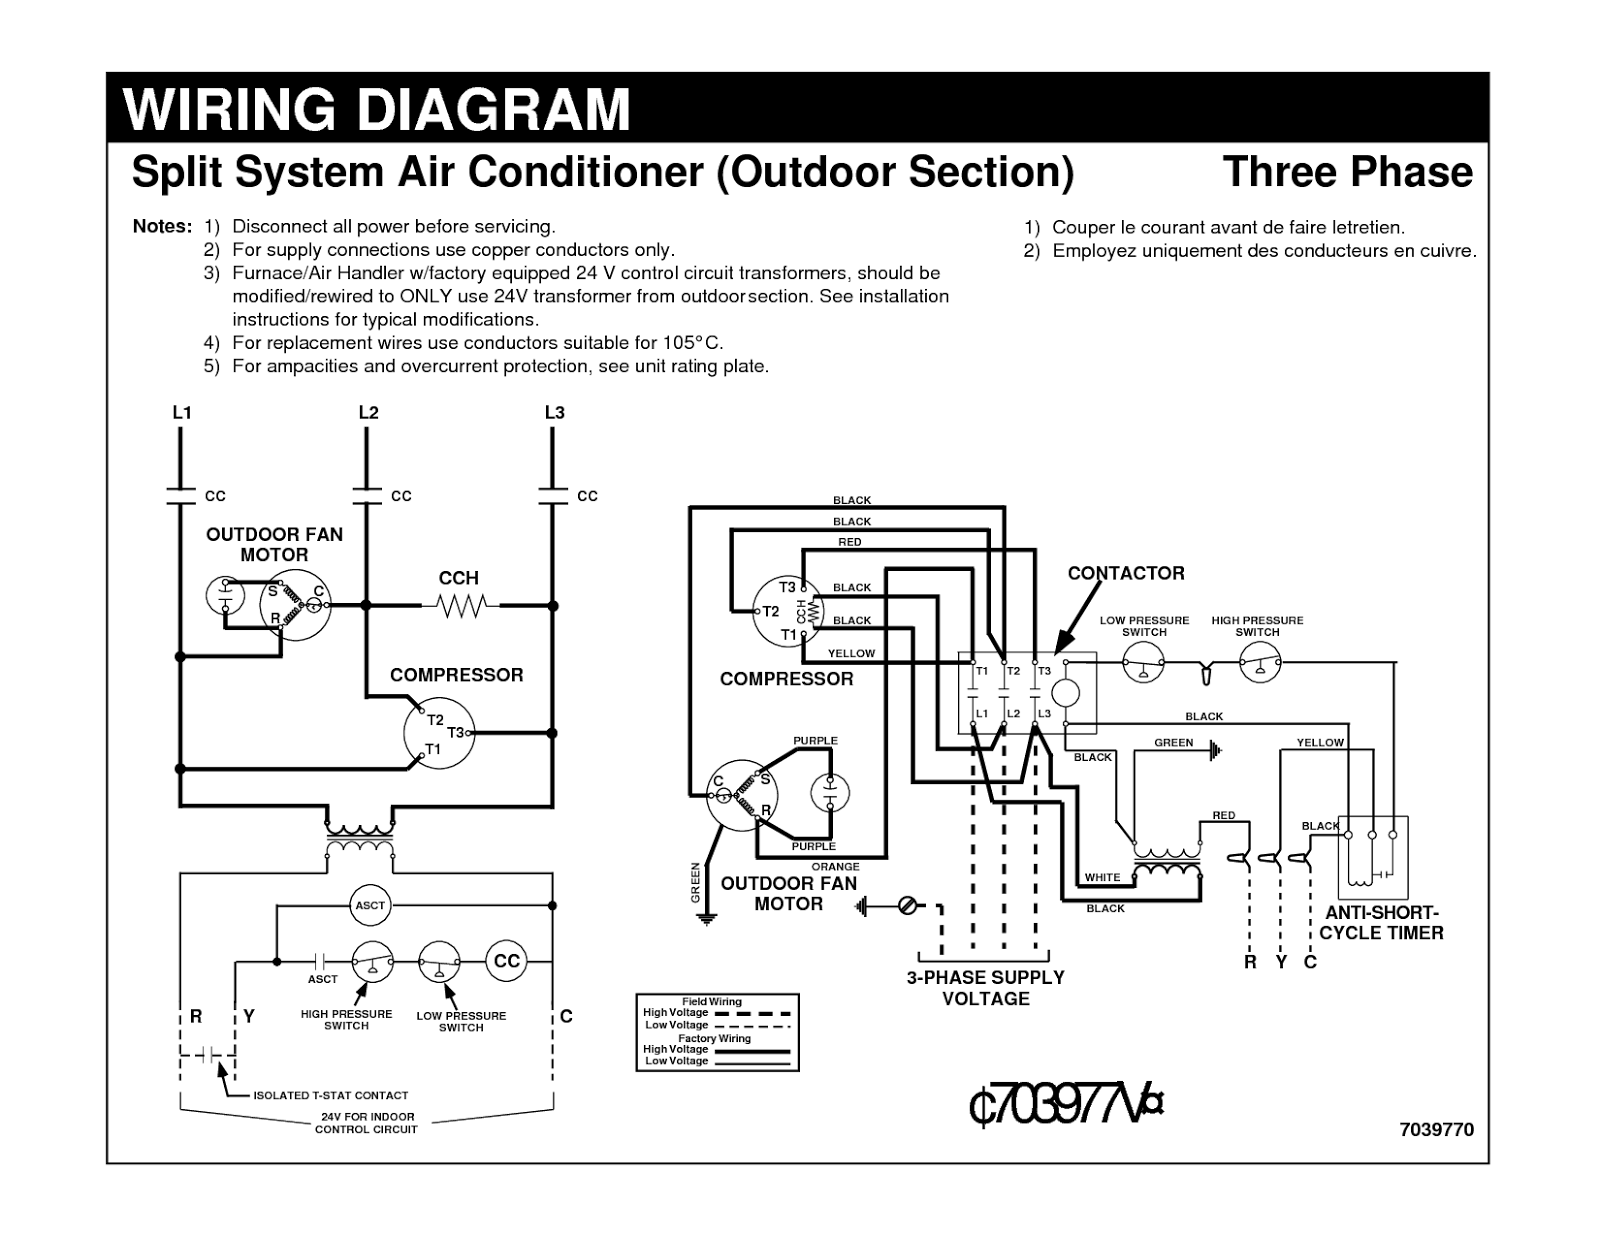 Ac System Wiring Diagram - Wiring Diagram Load on wiring diagram for hot water tank, wiring diagram for hot water heater, wiring diagram for electric brakes,